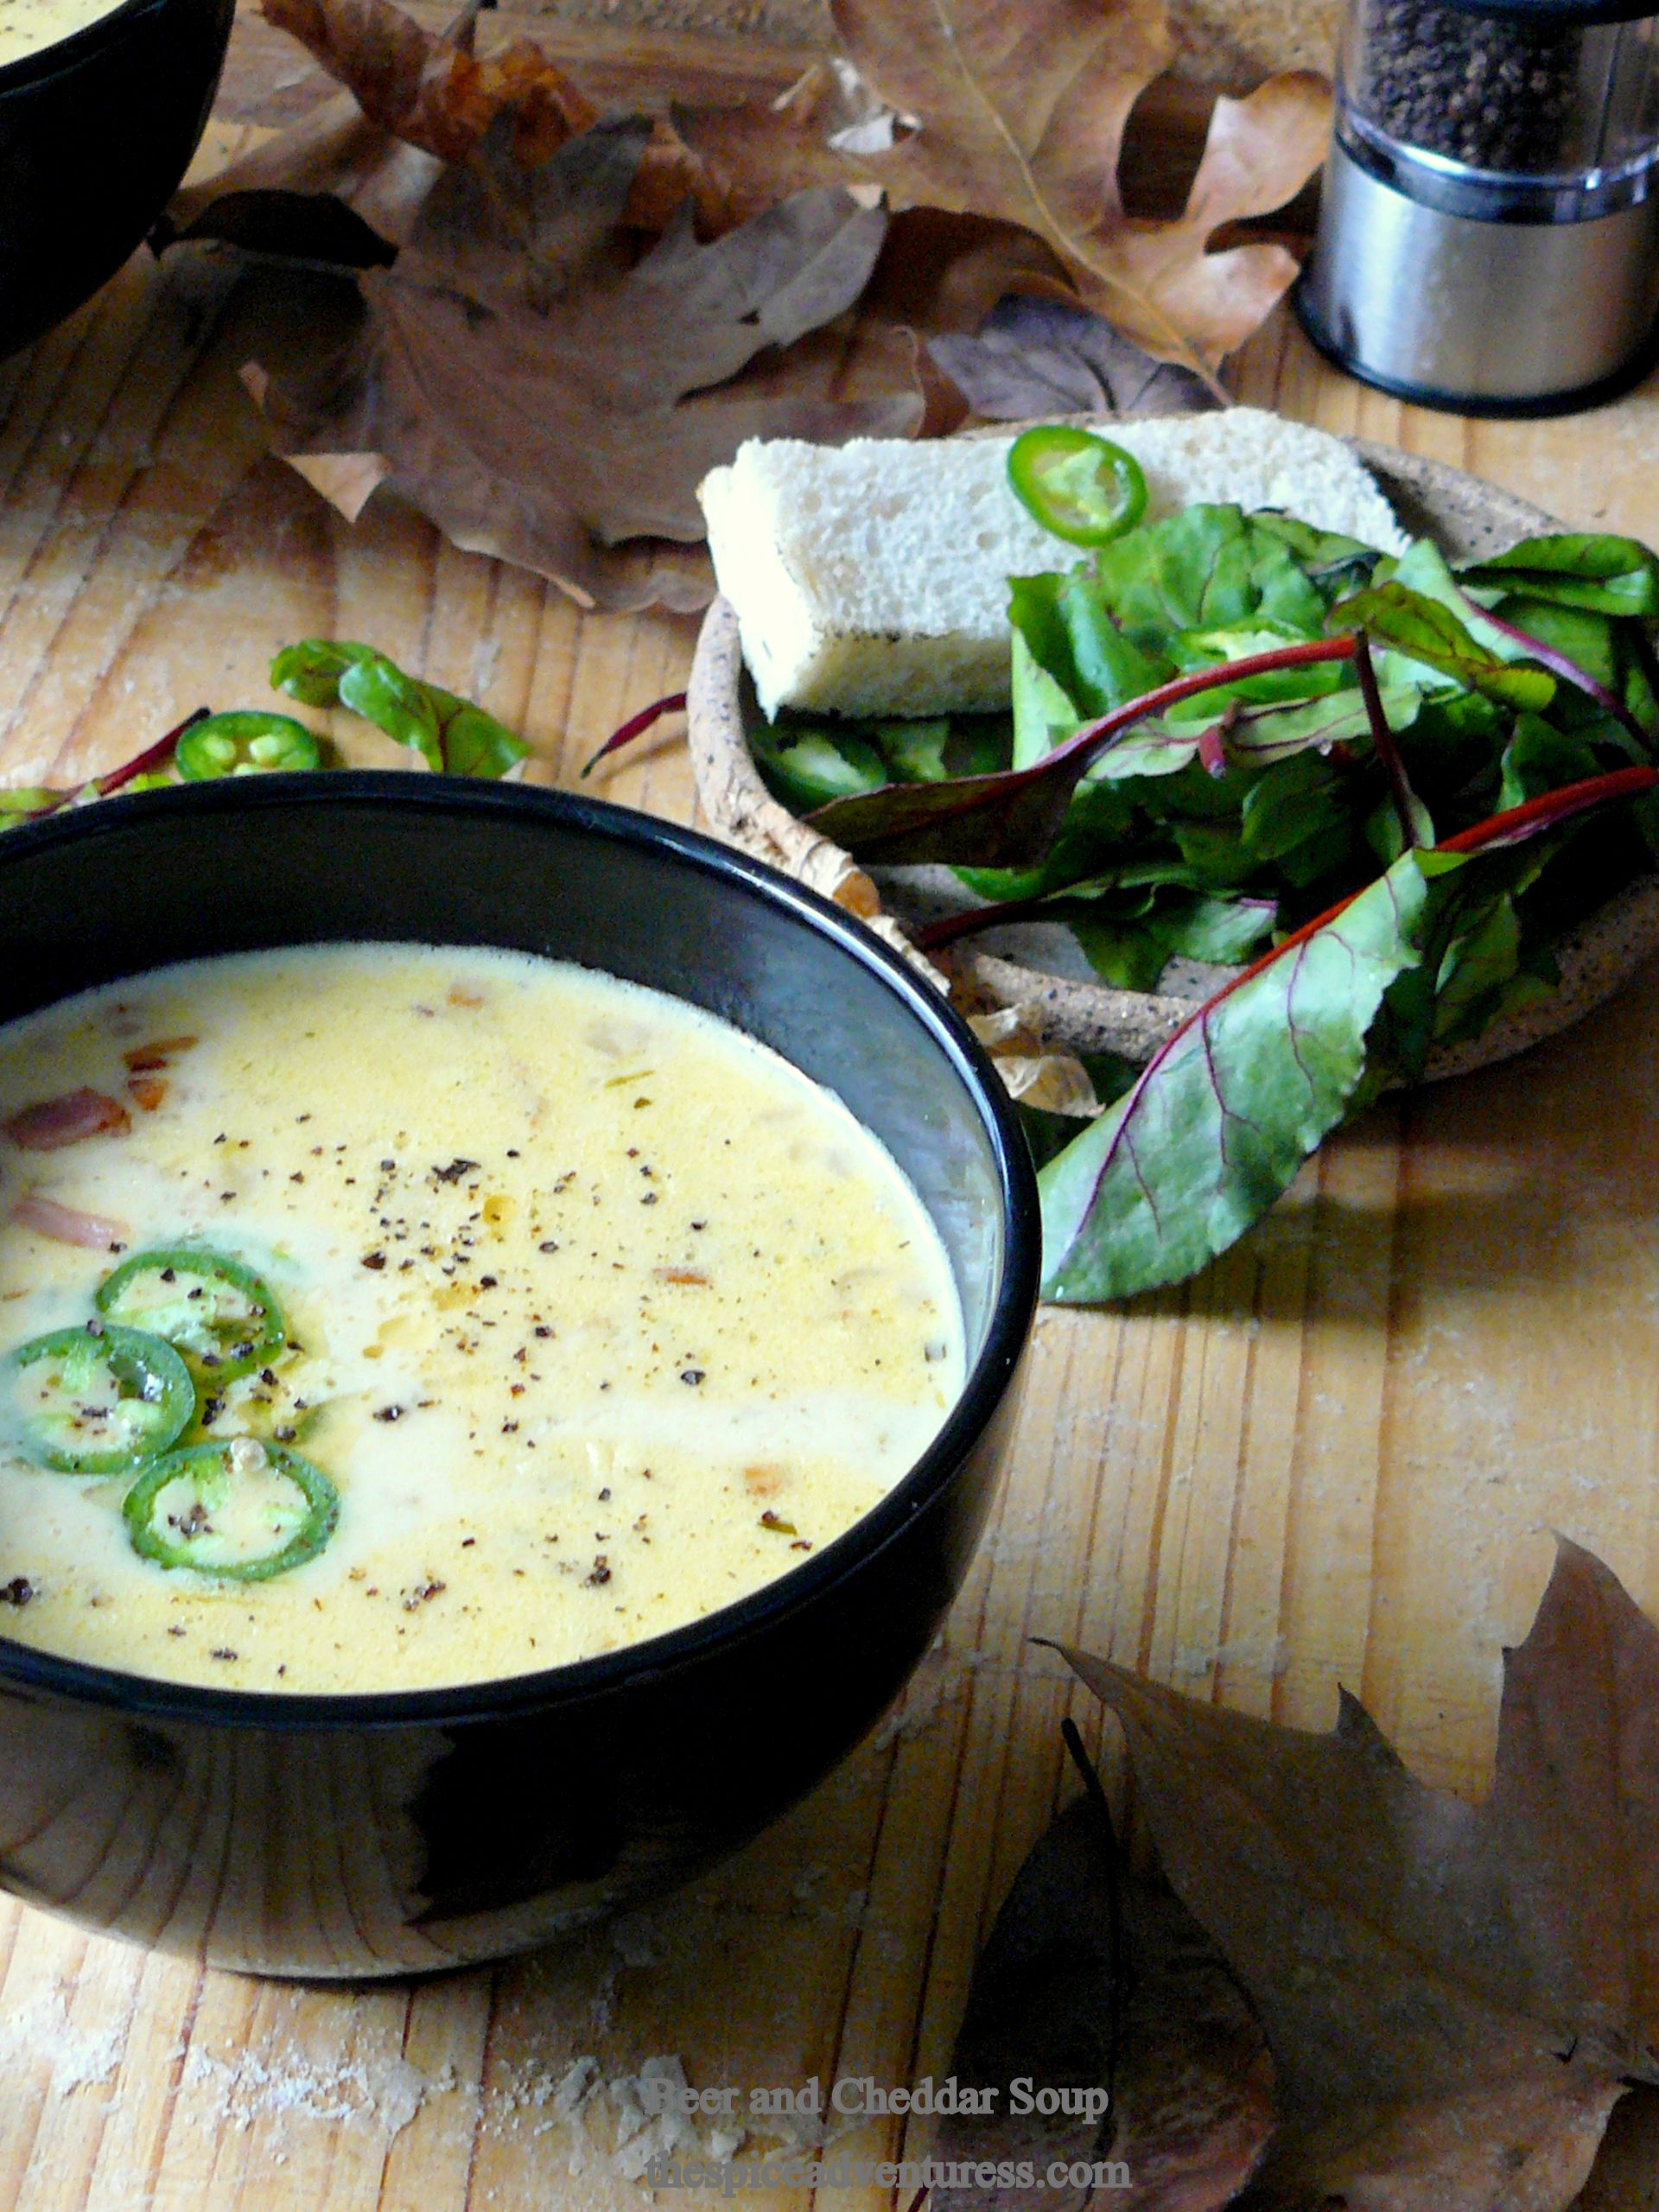 Beer and Cheddar Soup @thespiceadventuress.com